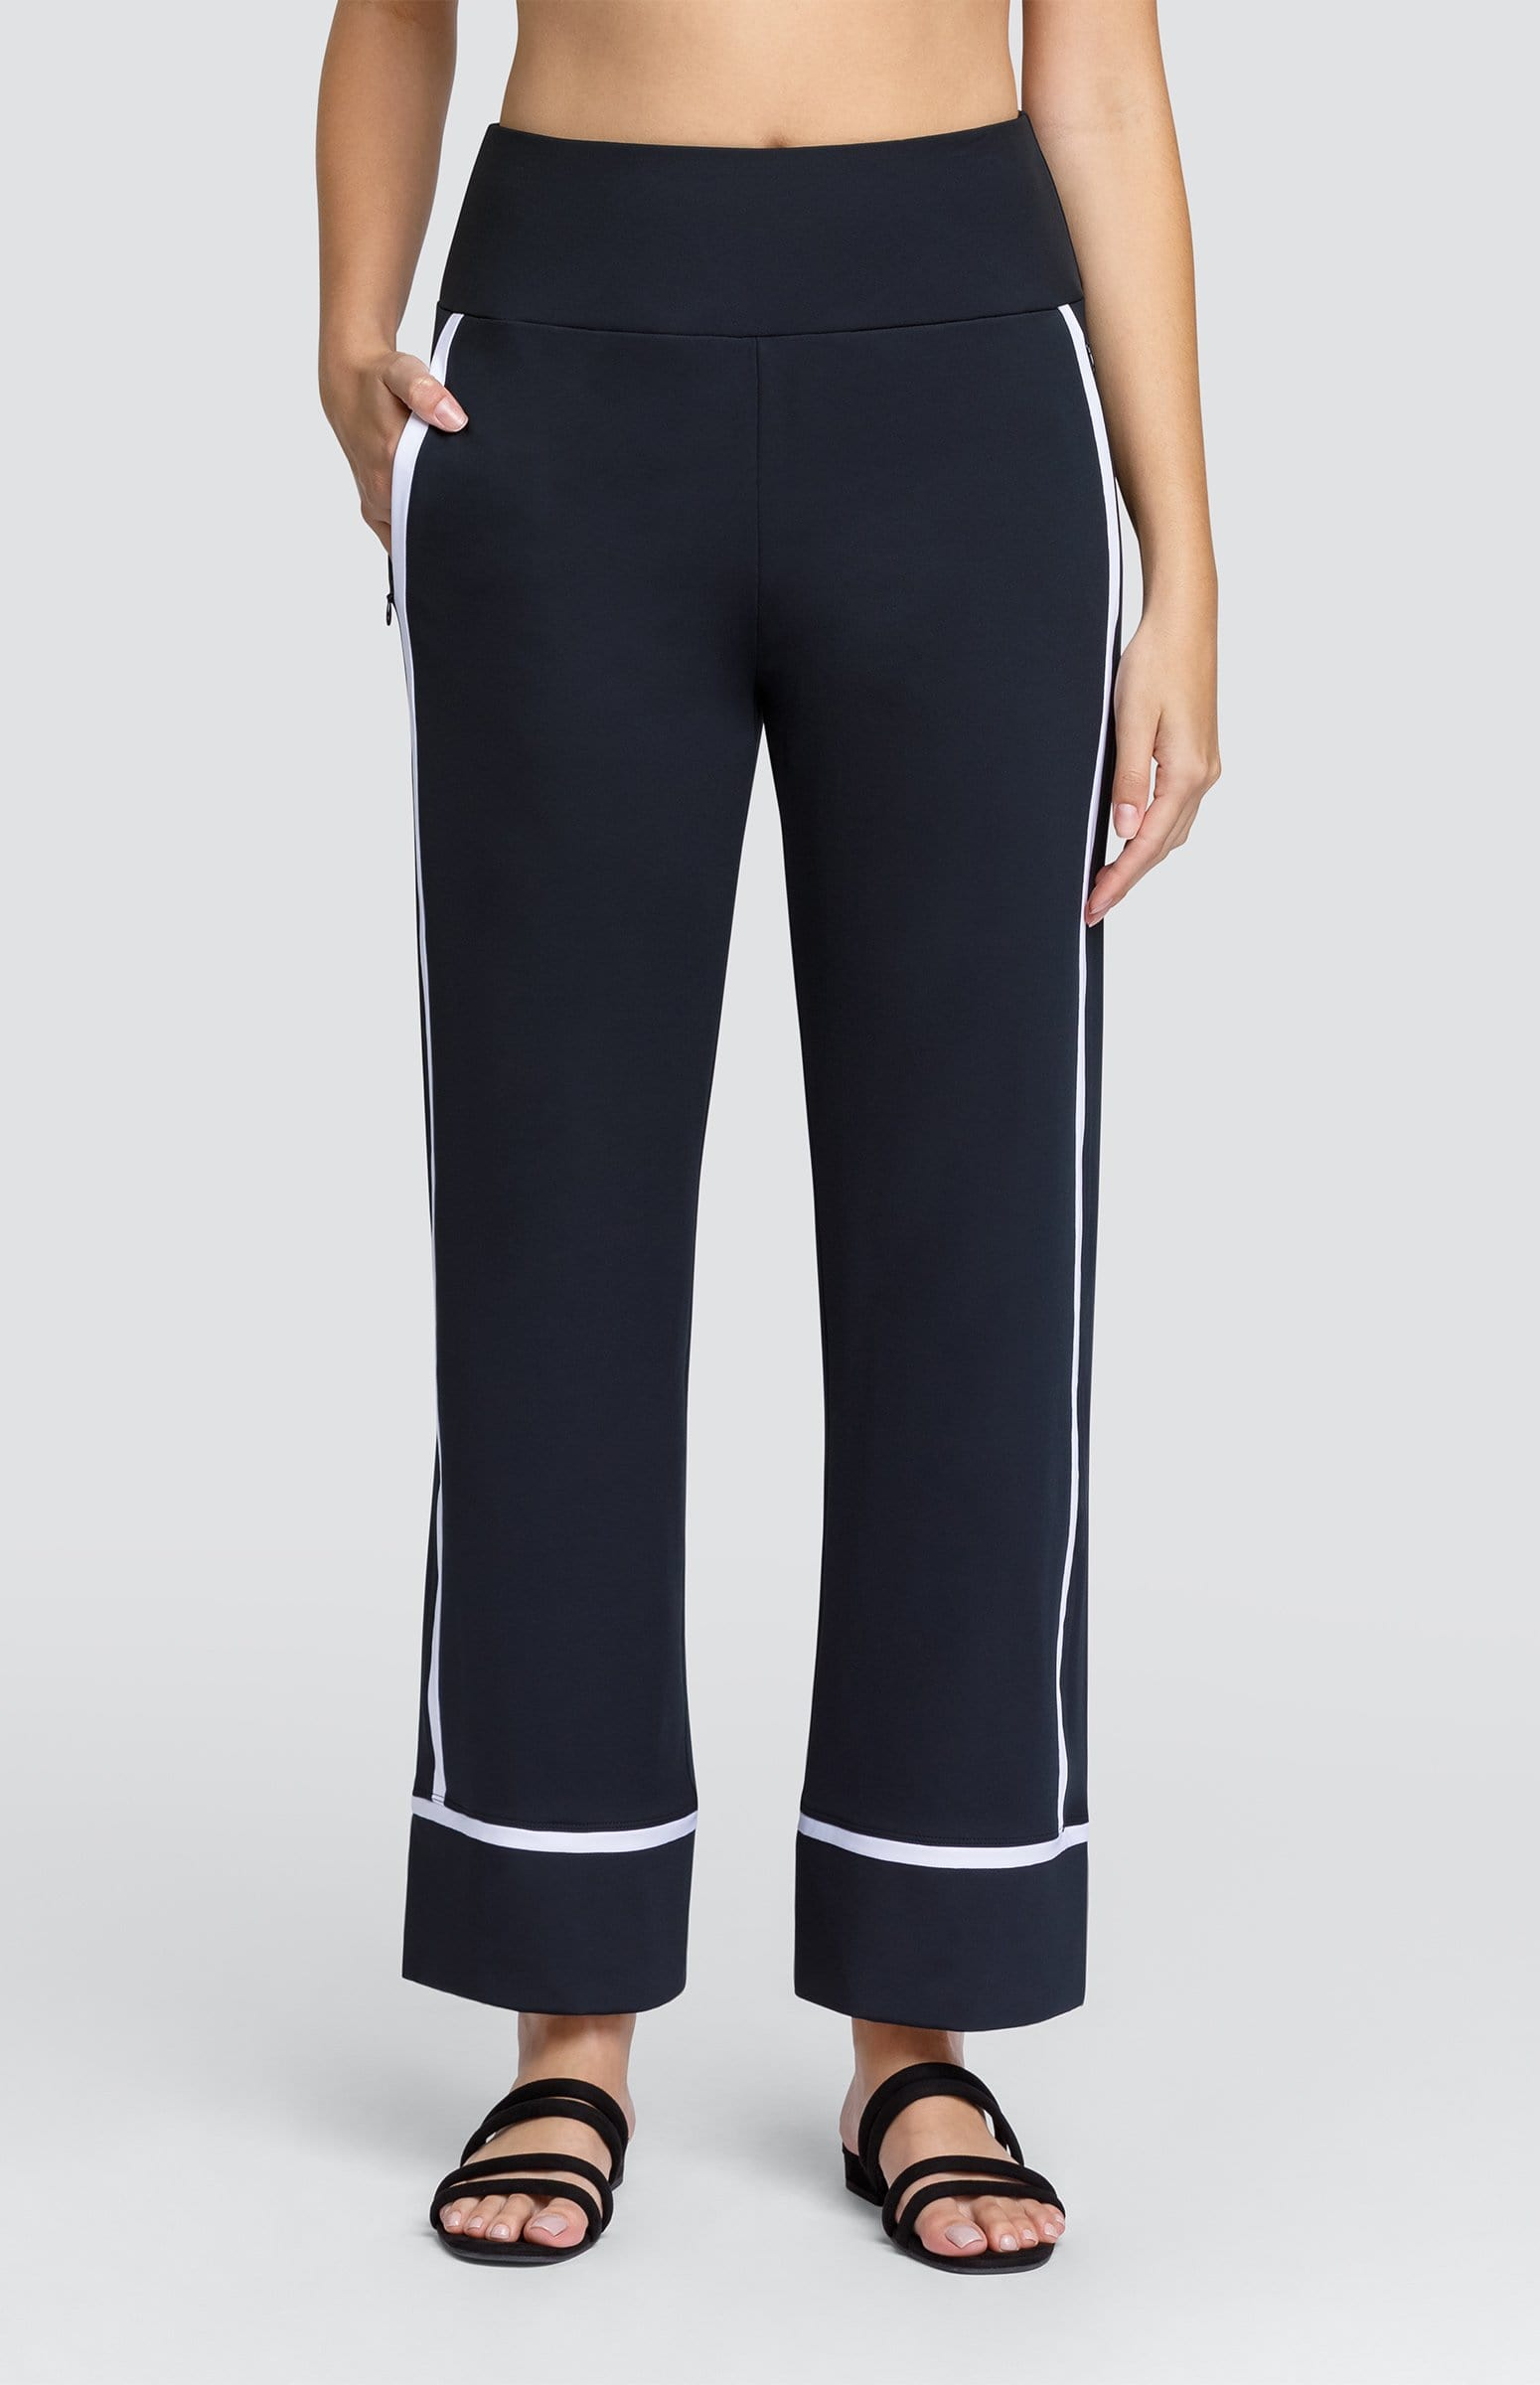 Estaphania Pant - Onyx Black